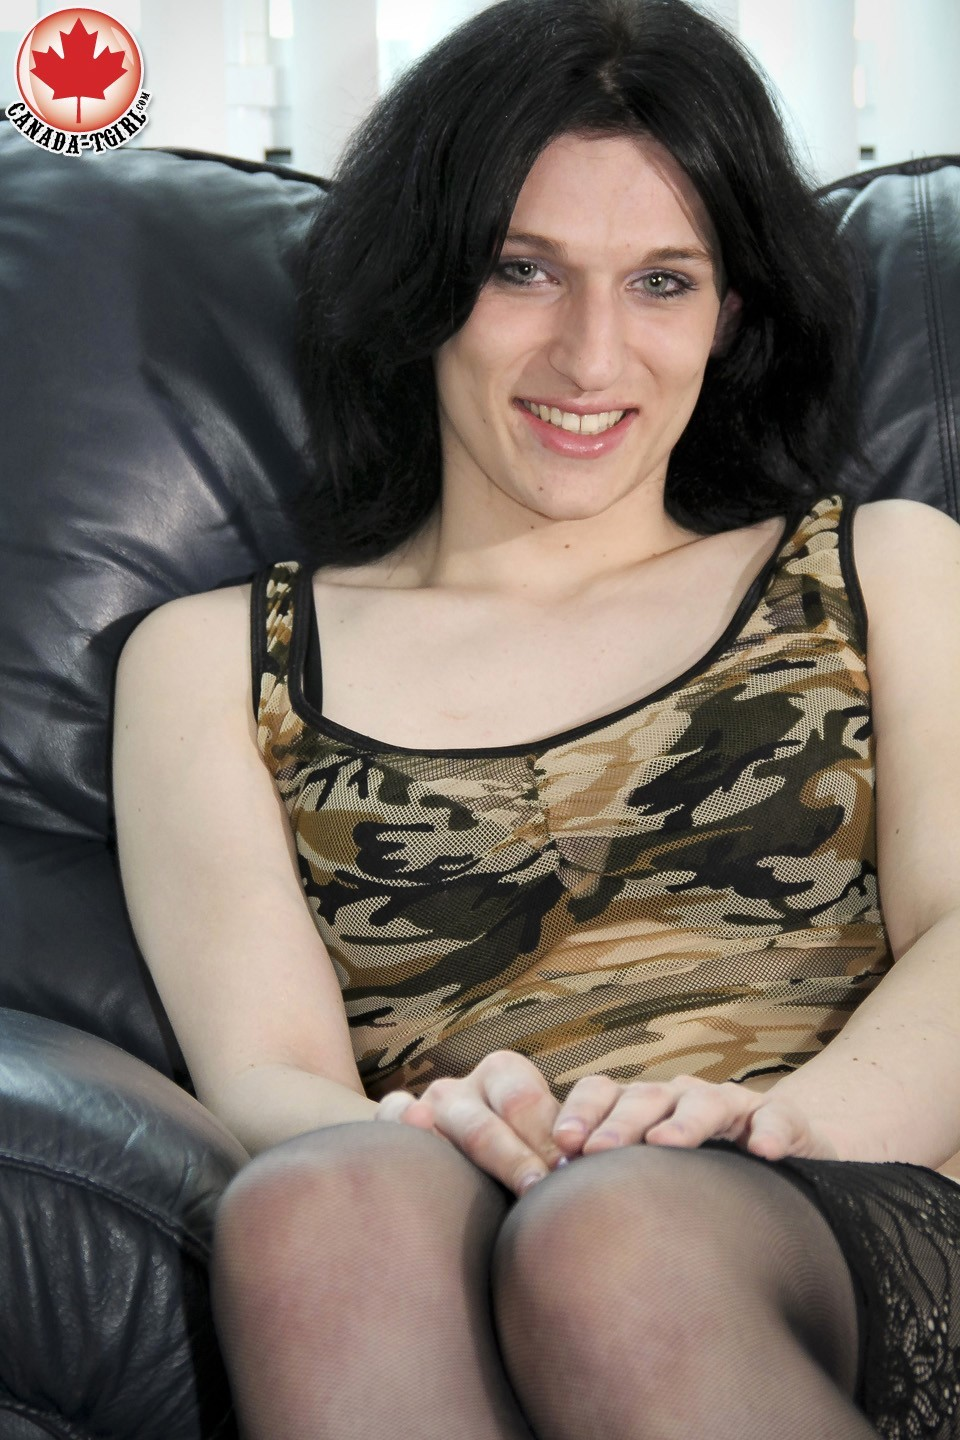 transexual maria skye loosing her outfit